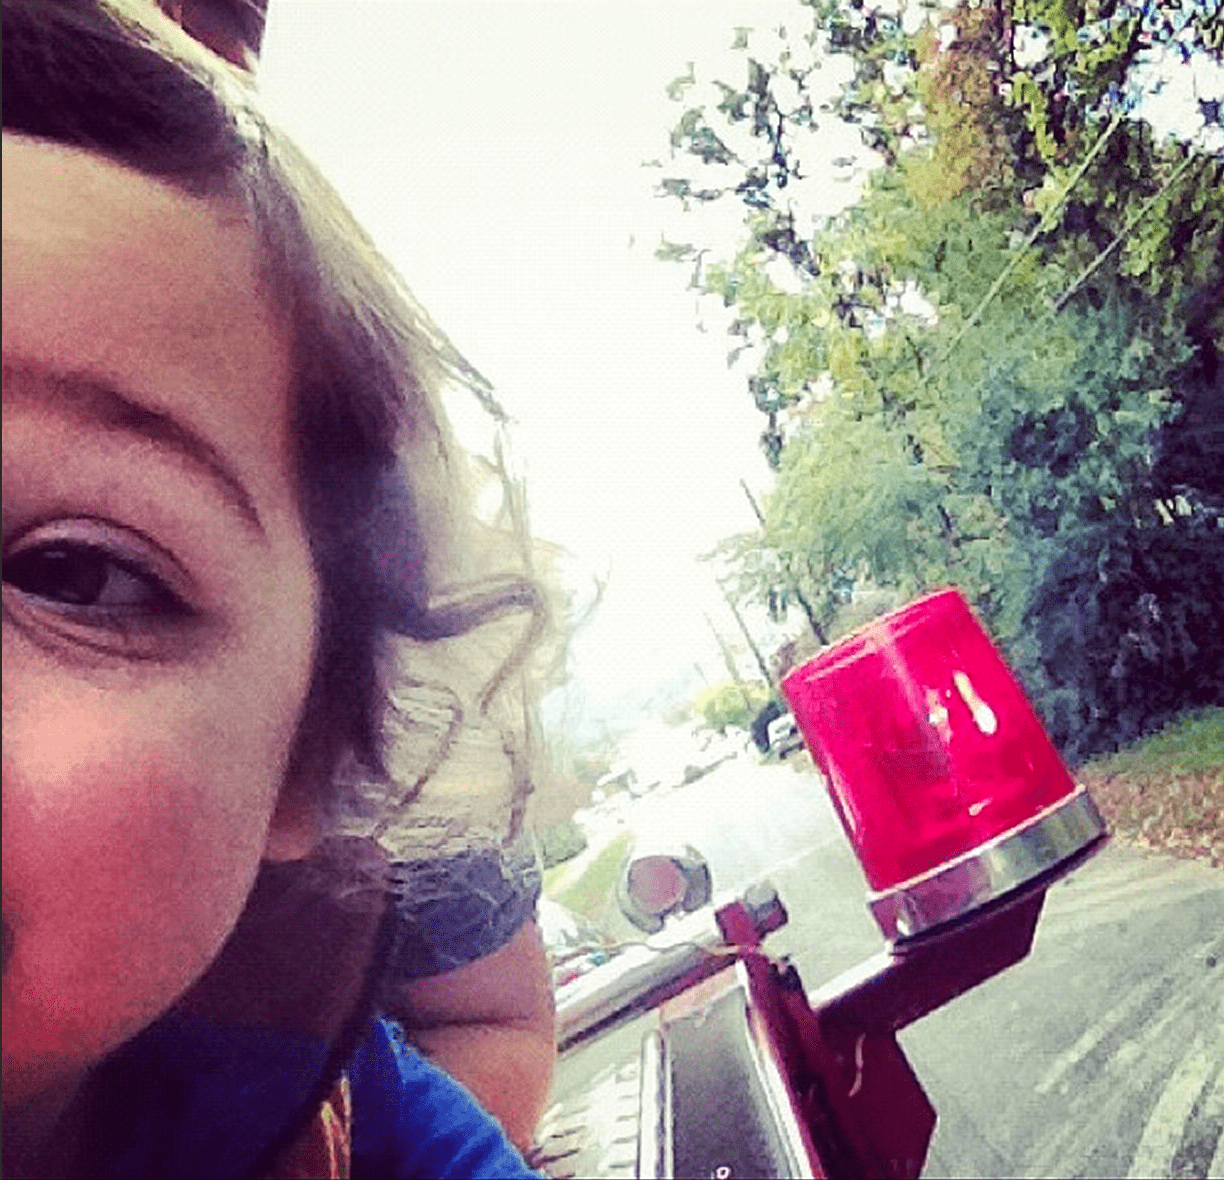 half a toddler's face can be seen, he's riding on a firetruck